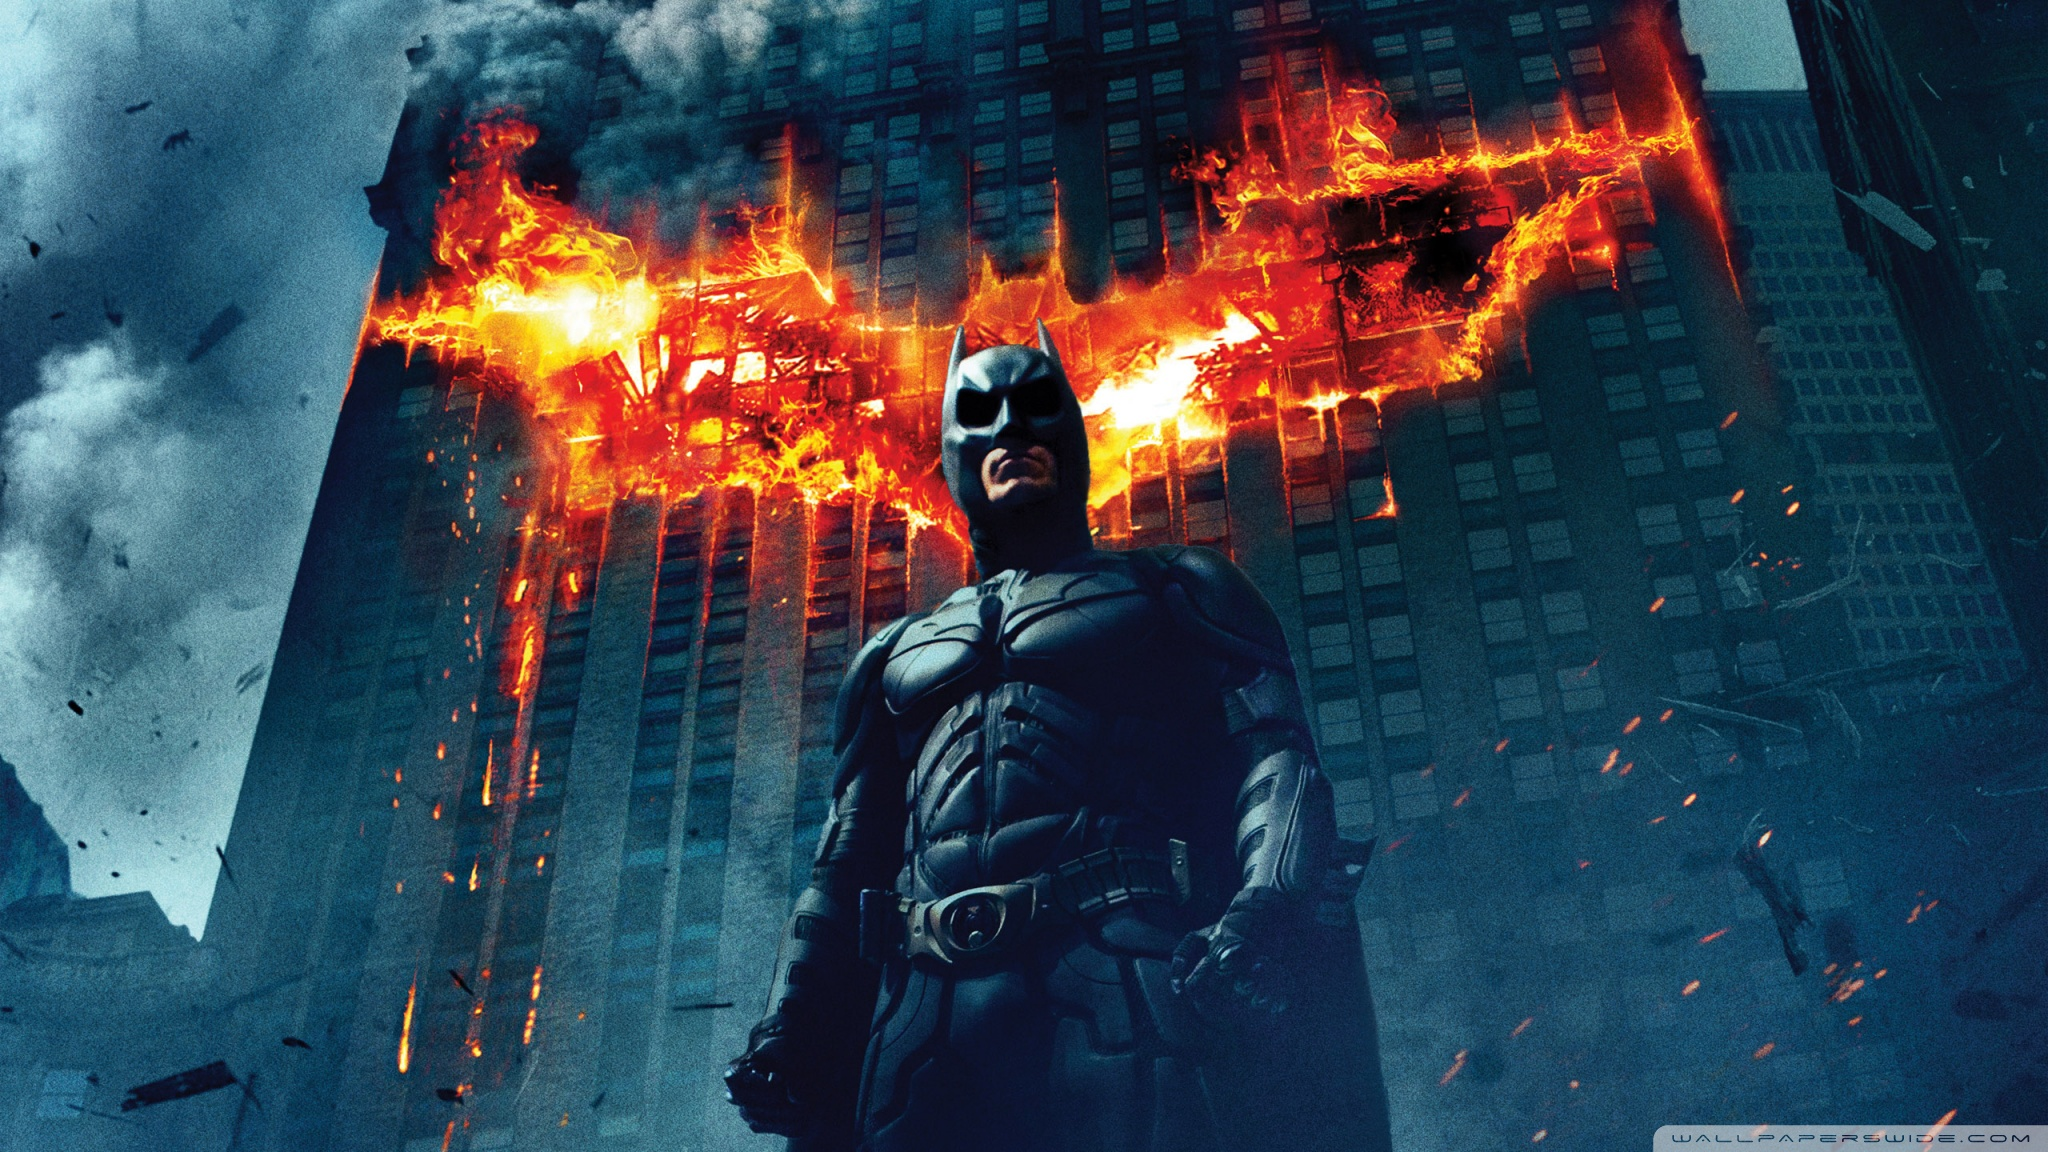 Batman The Dark Knight HD desktop wallpaper : High Definition